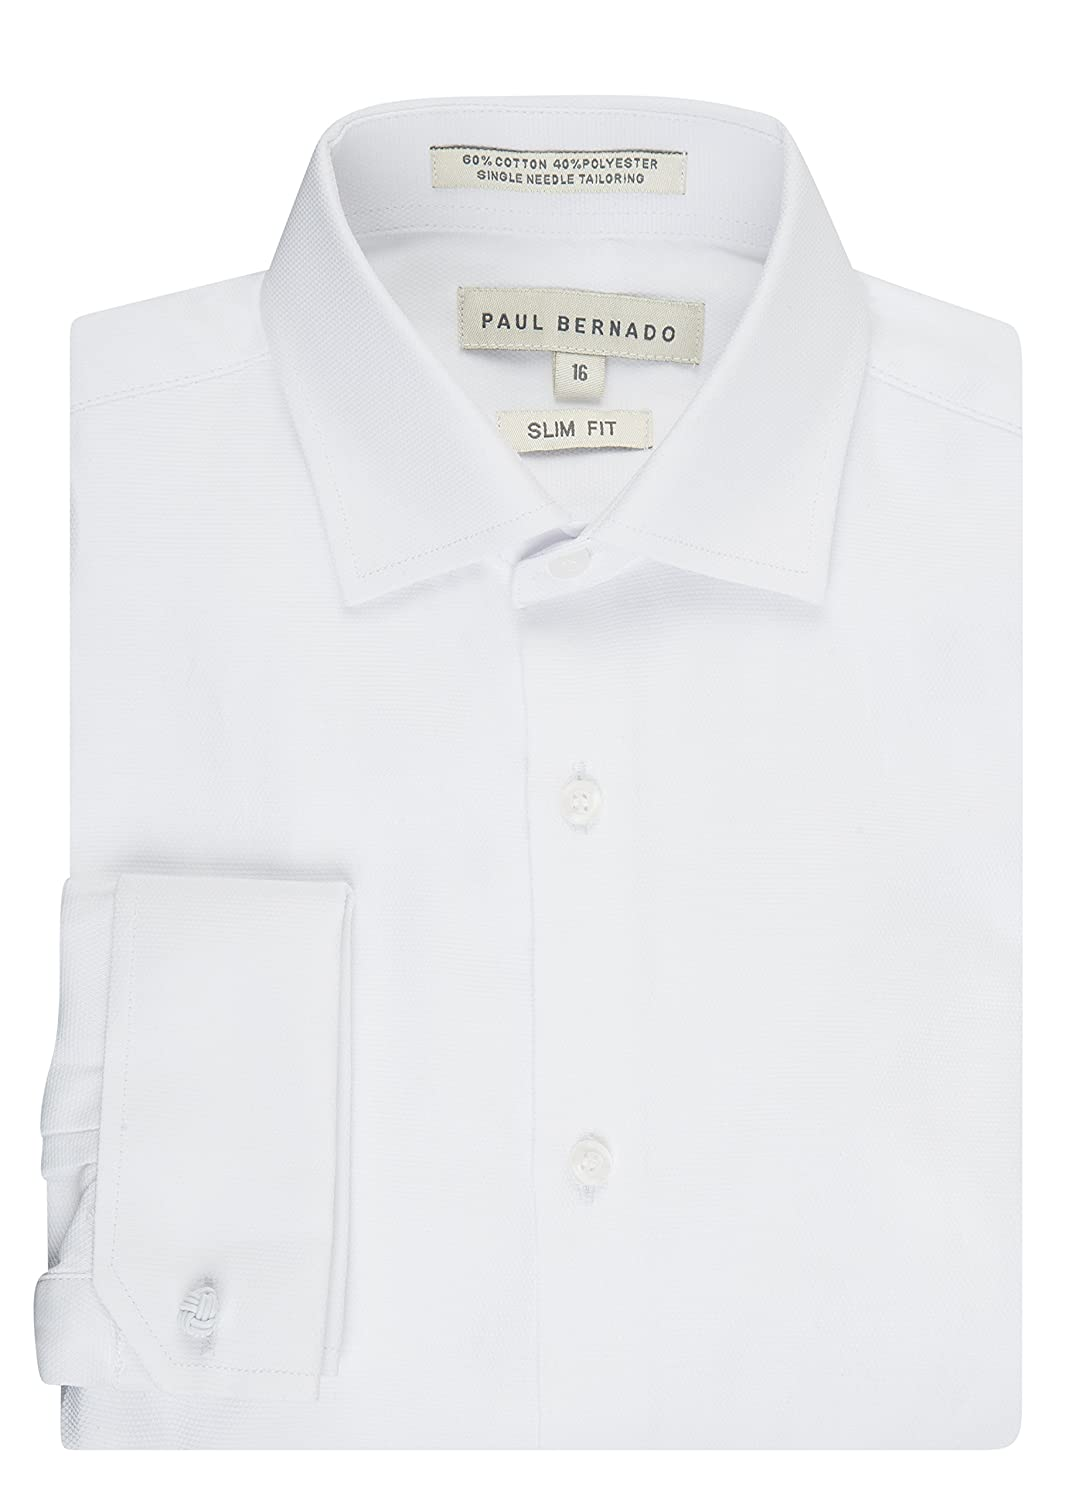 Paul Bernado Boy's Slim Fit French Cuff Pique Design Dress Shirt (ALL SIZES) 2205SLFC